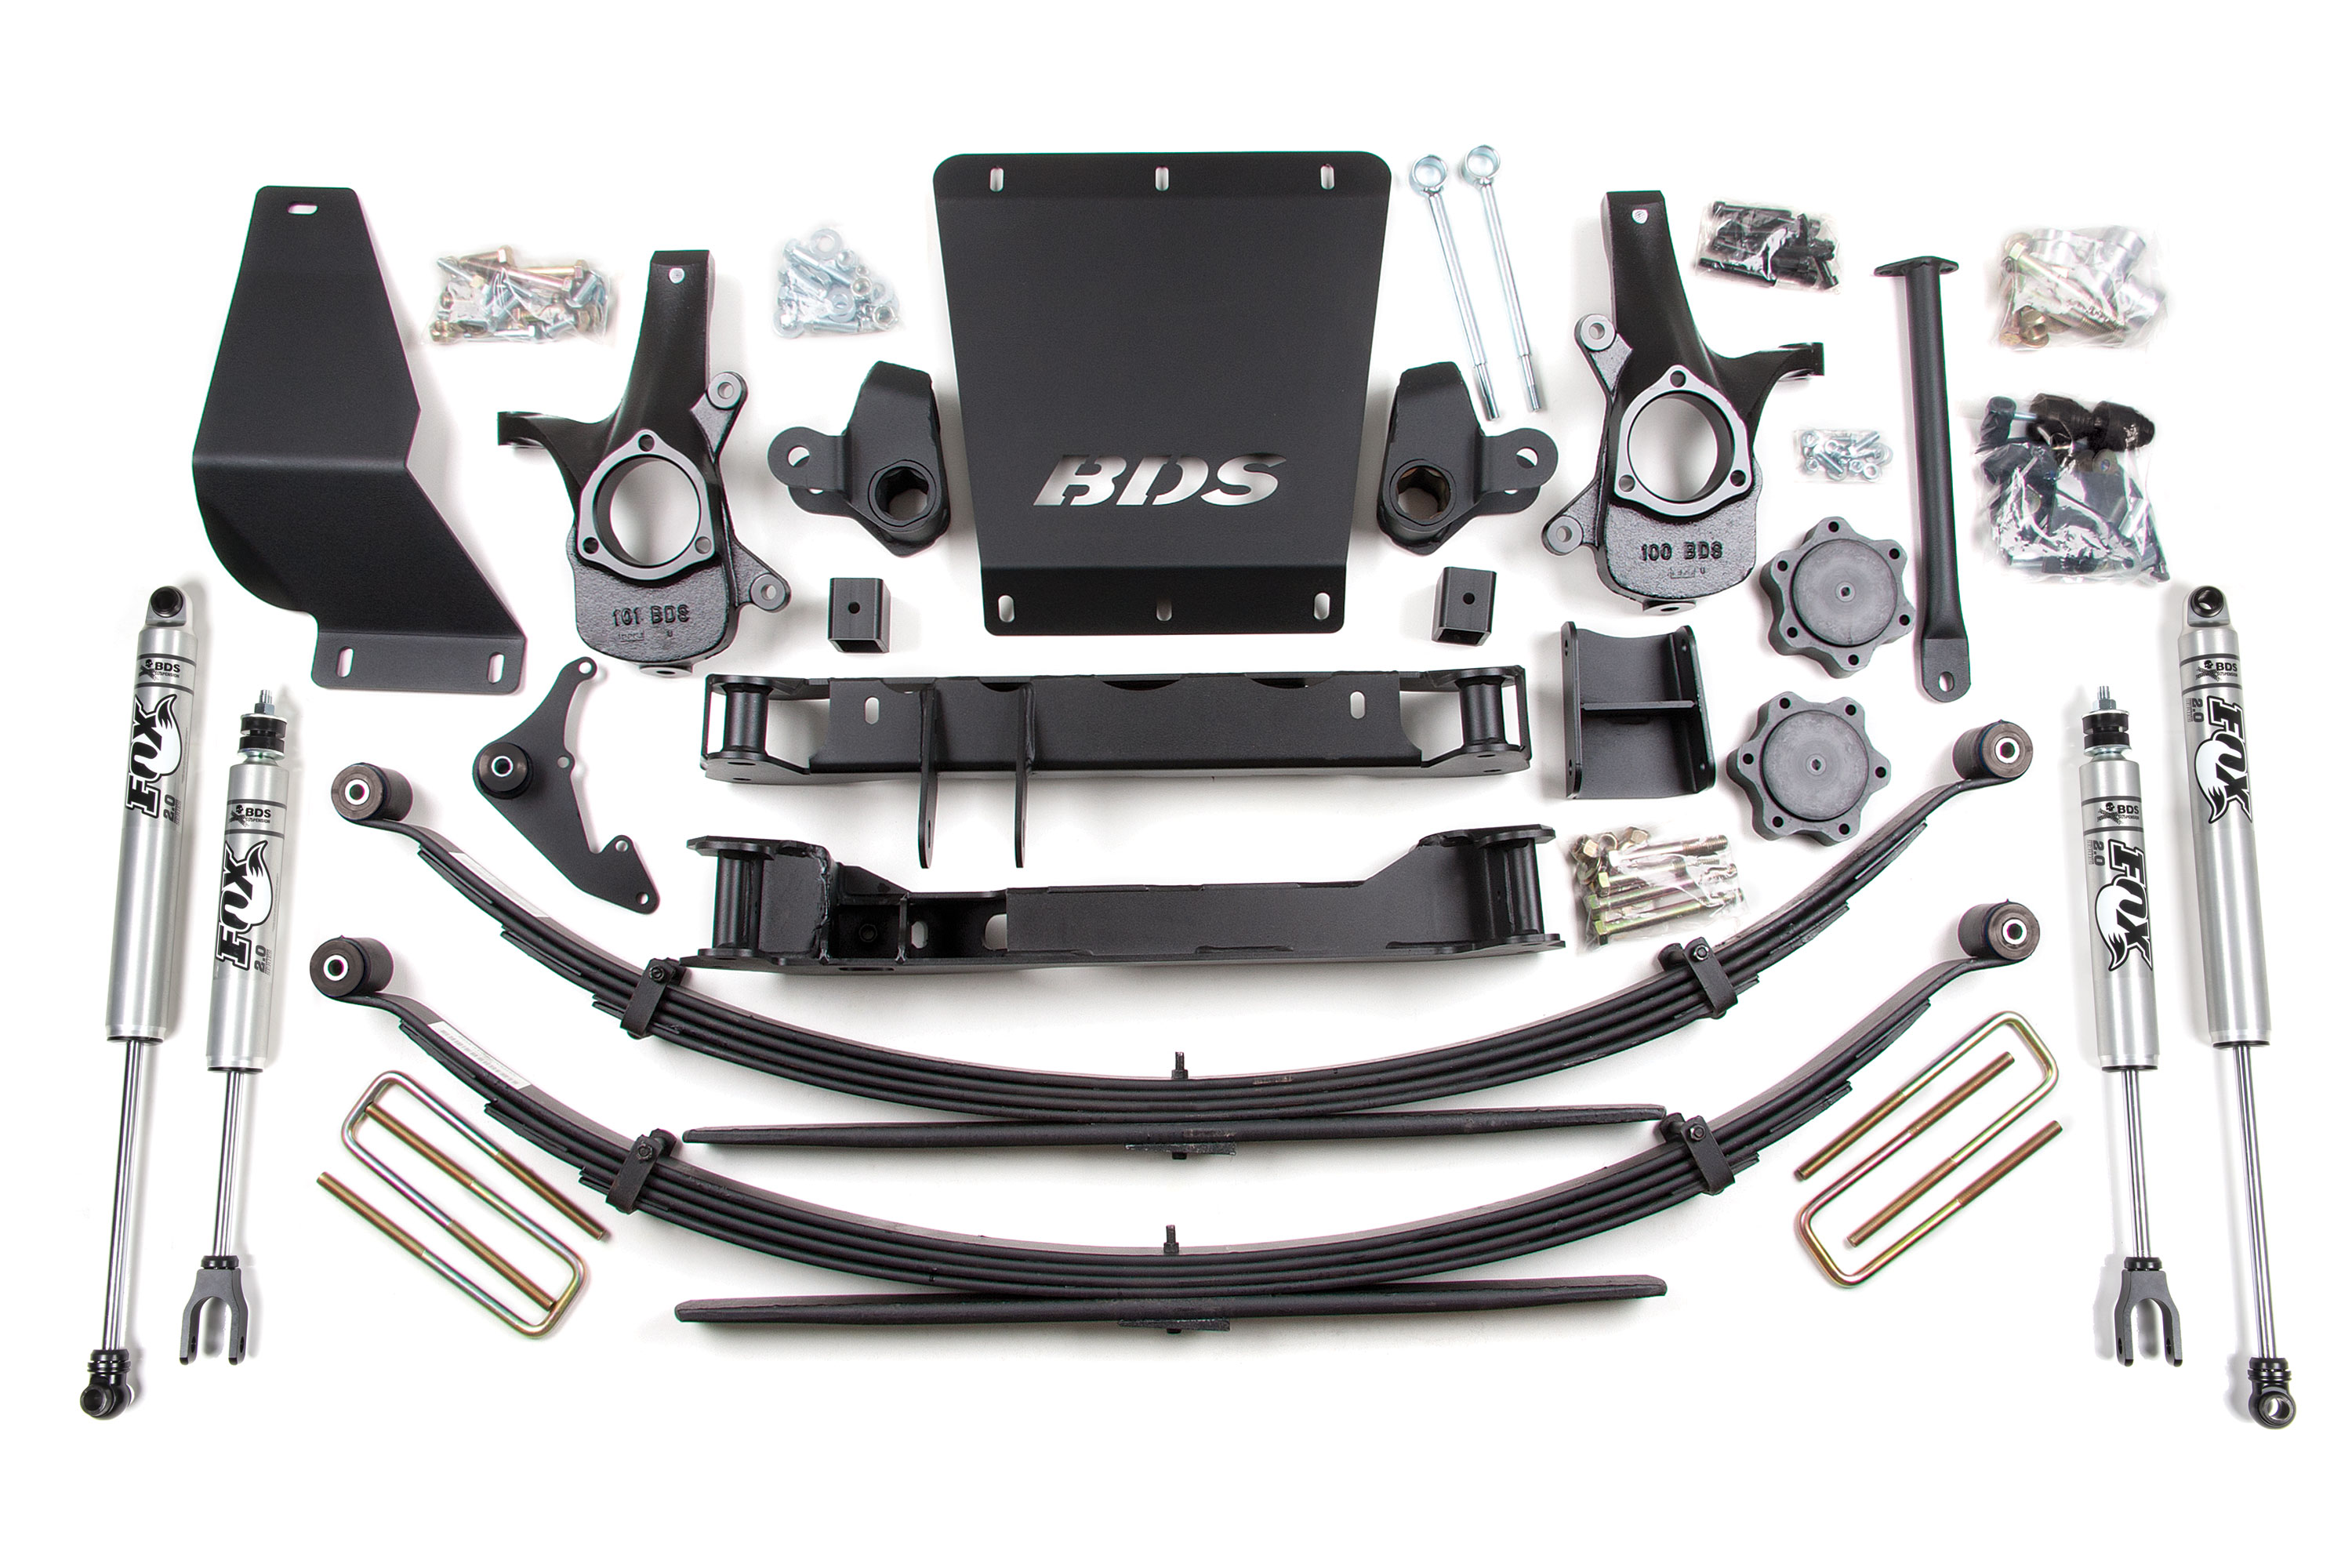 6 5 Lift Kit 1999 2006 Chevy Gmc 1 2 Ton Truck 4wd K1500 179h Bds Suspension